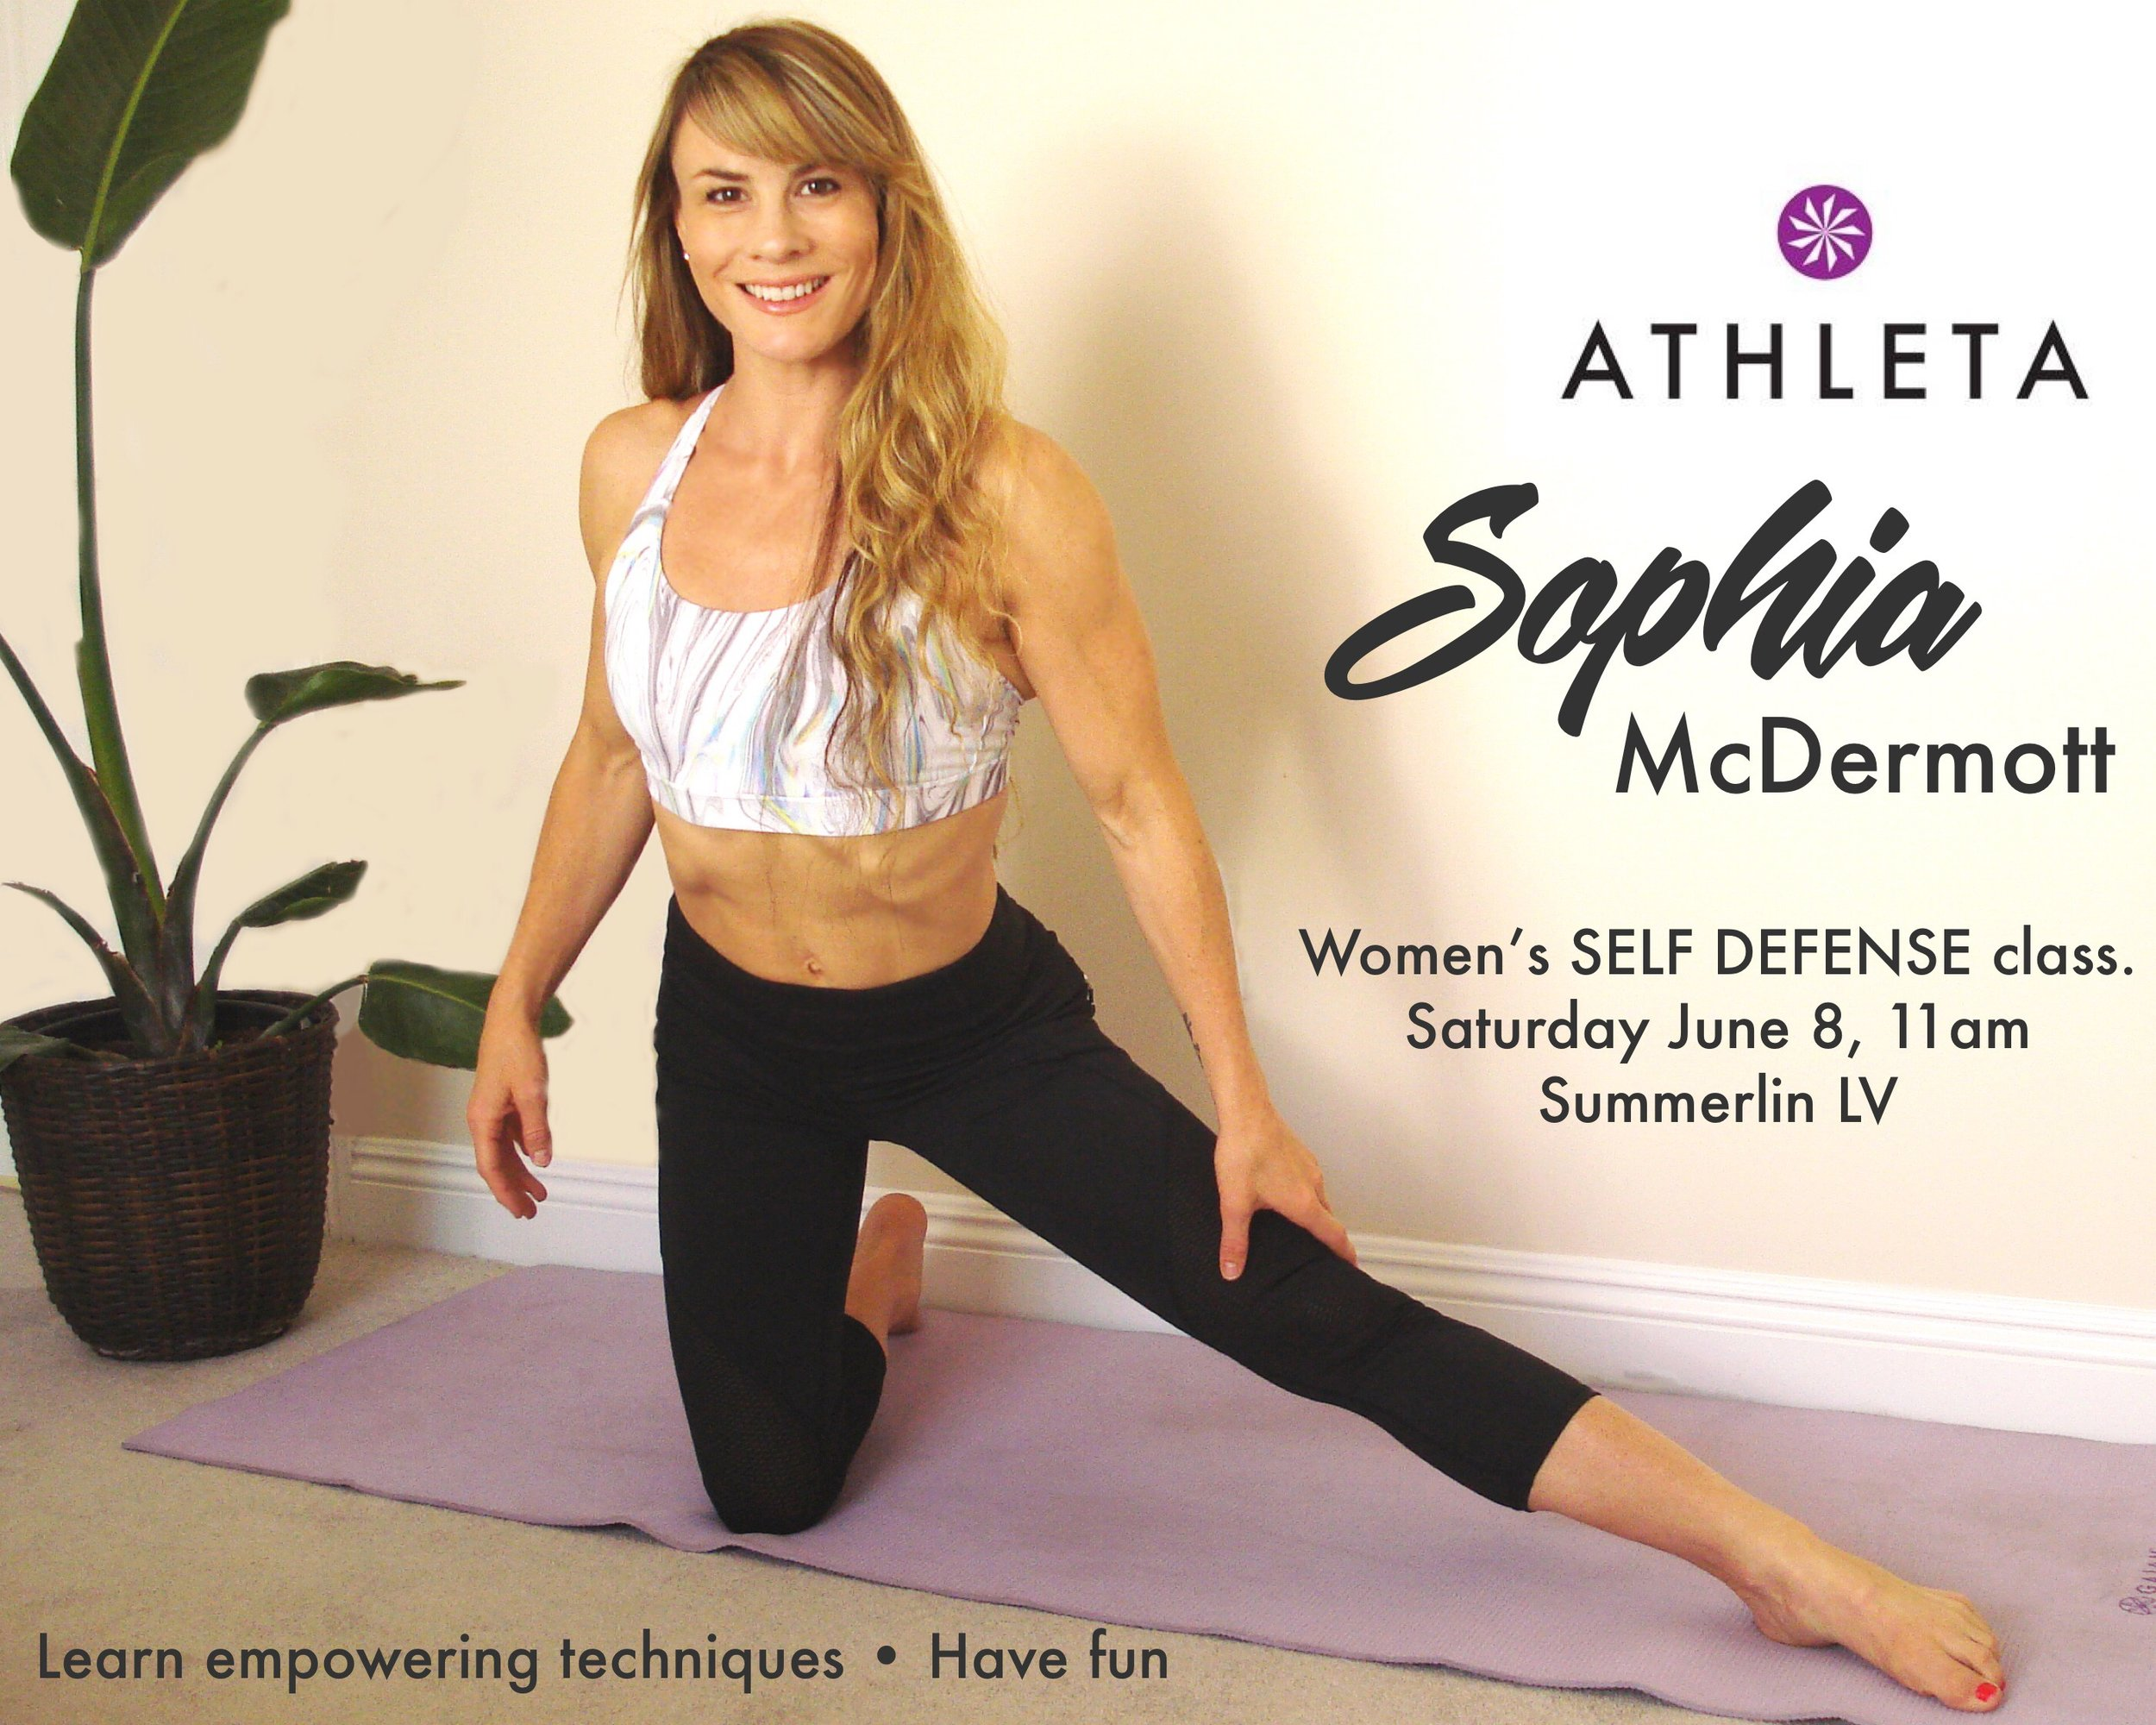 Athleta sophia mcdermott v2.jpg